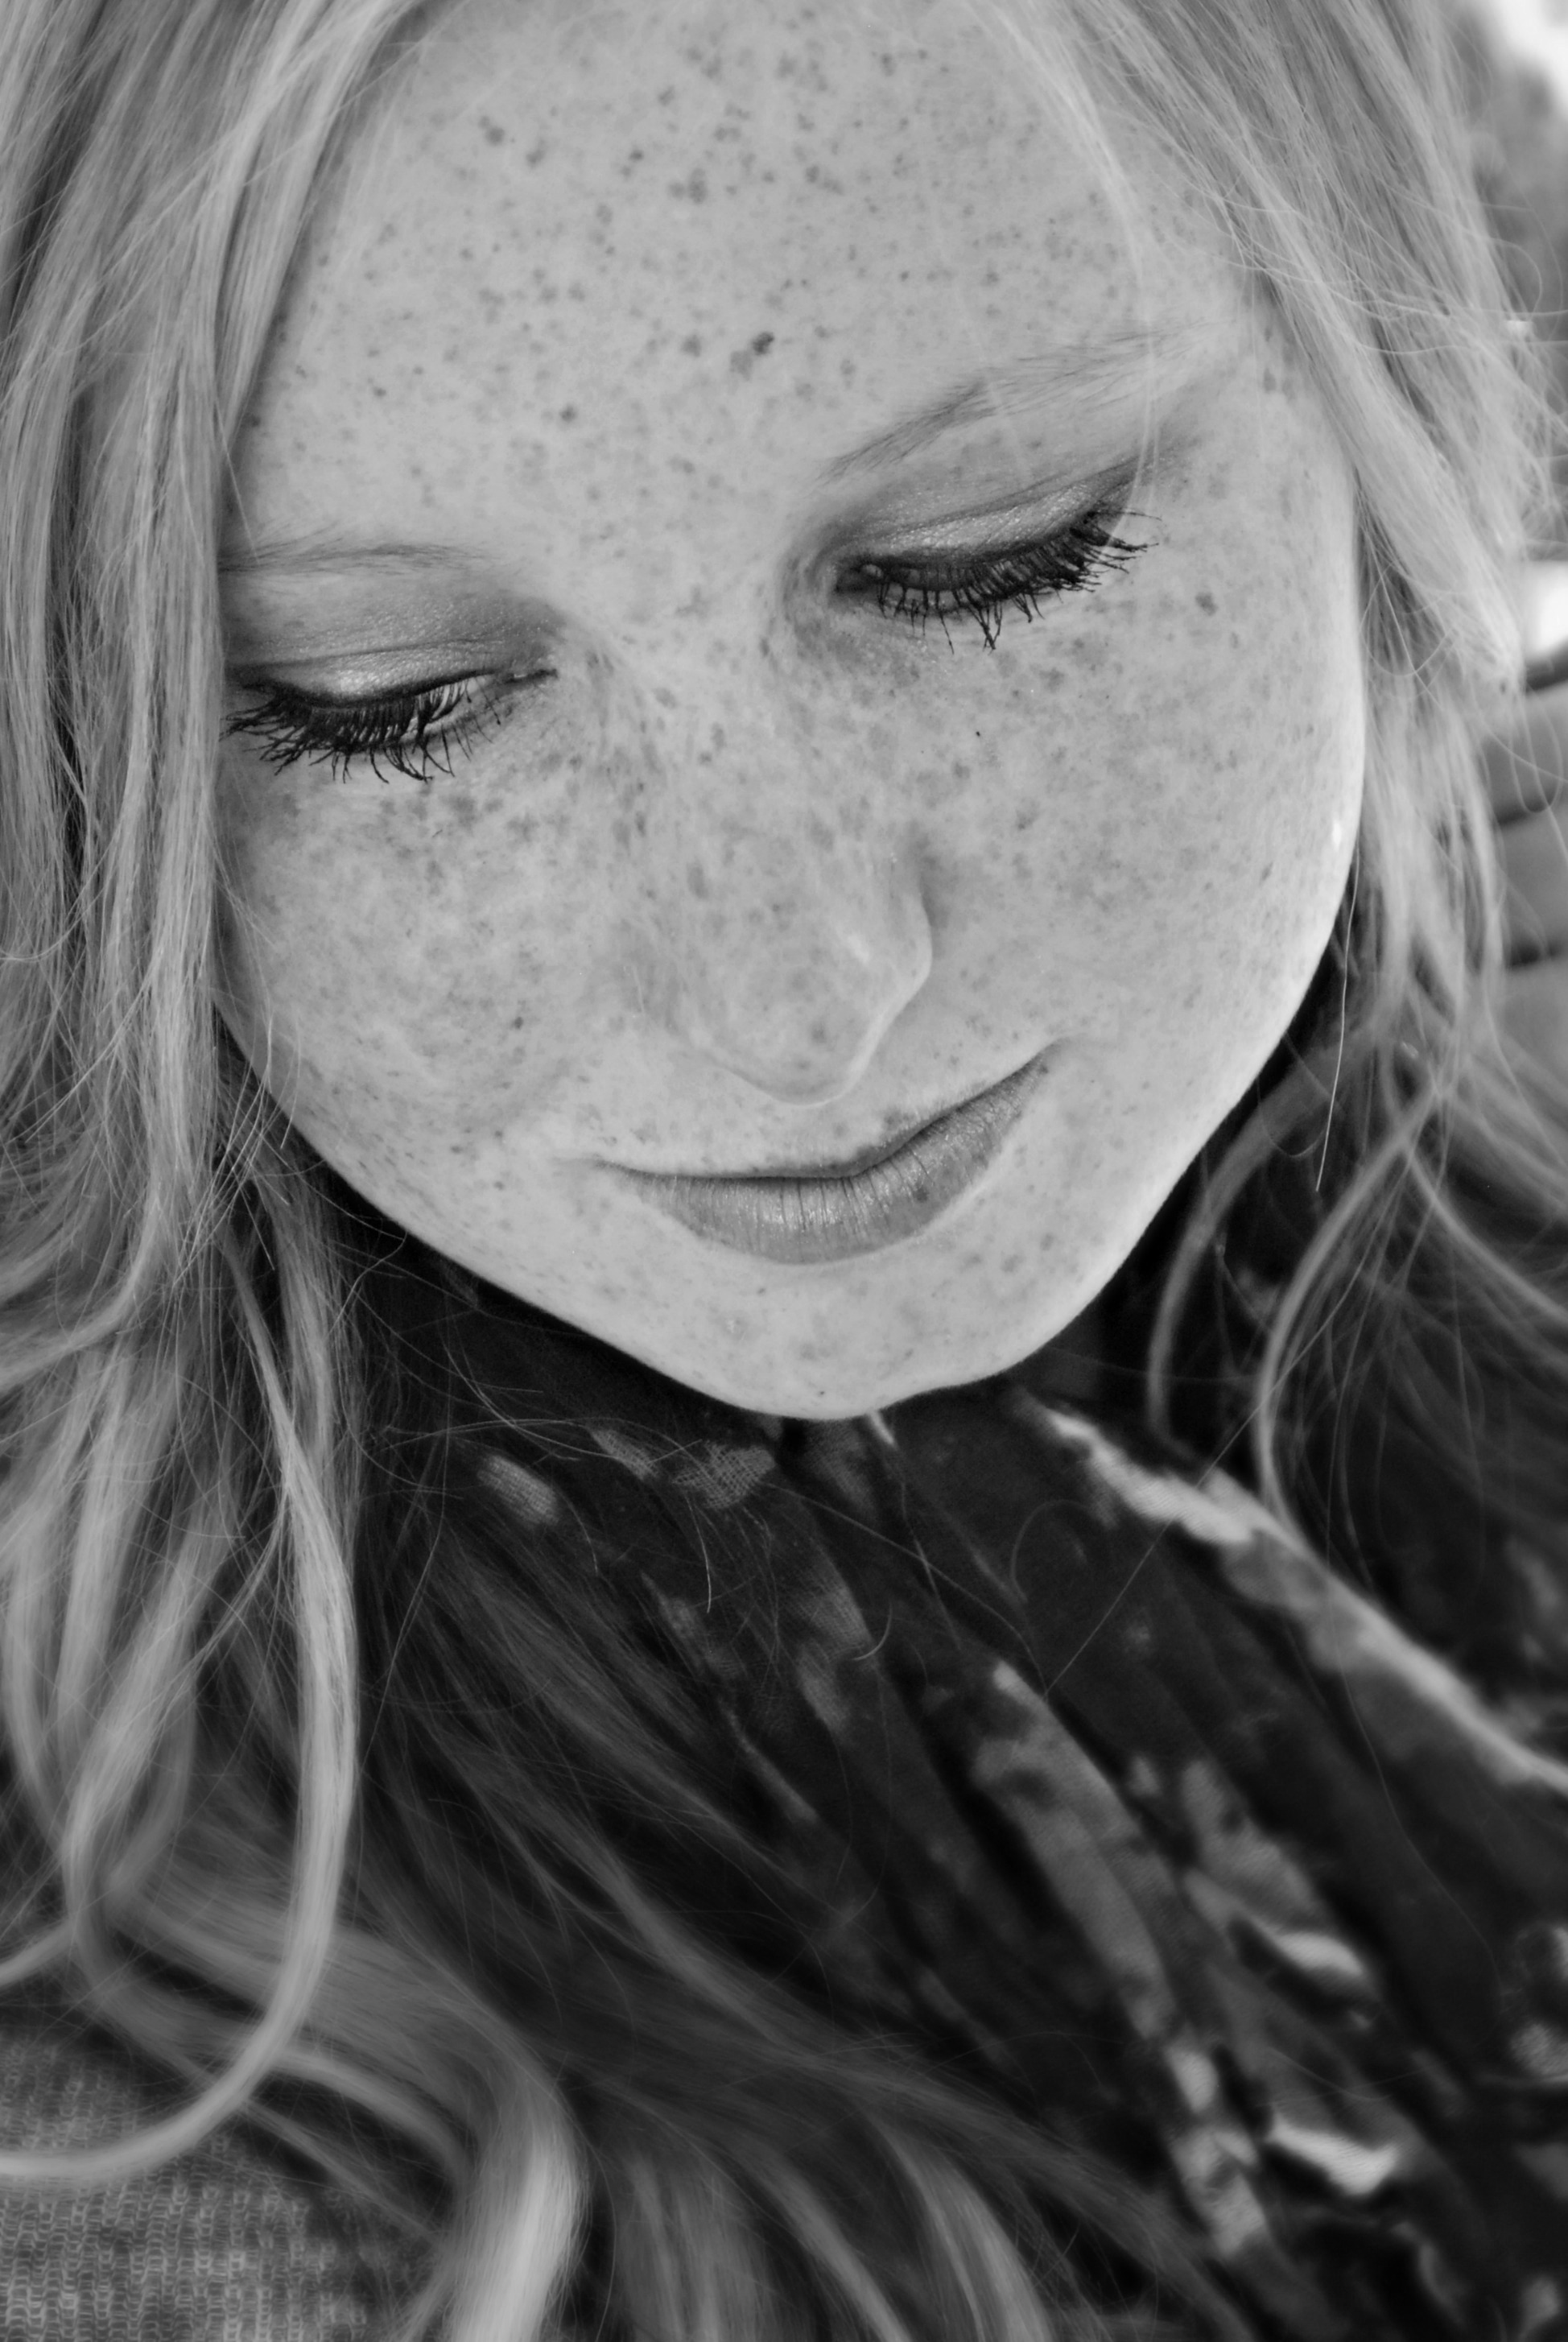 The Freckled Girl